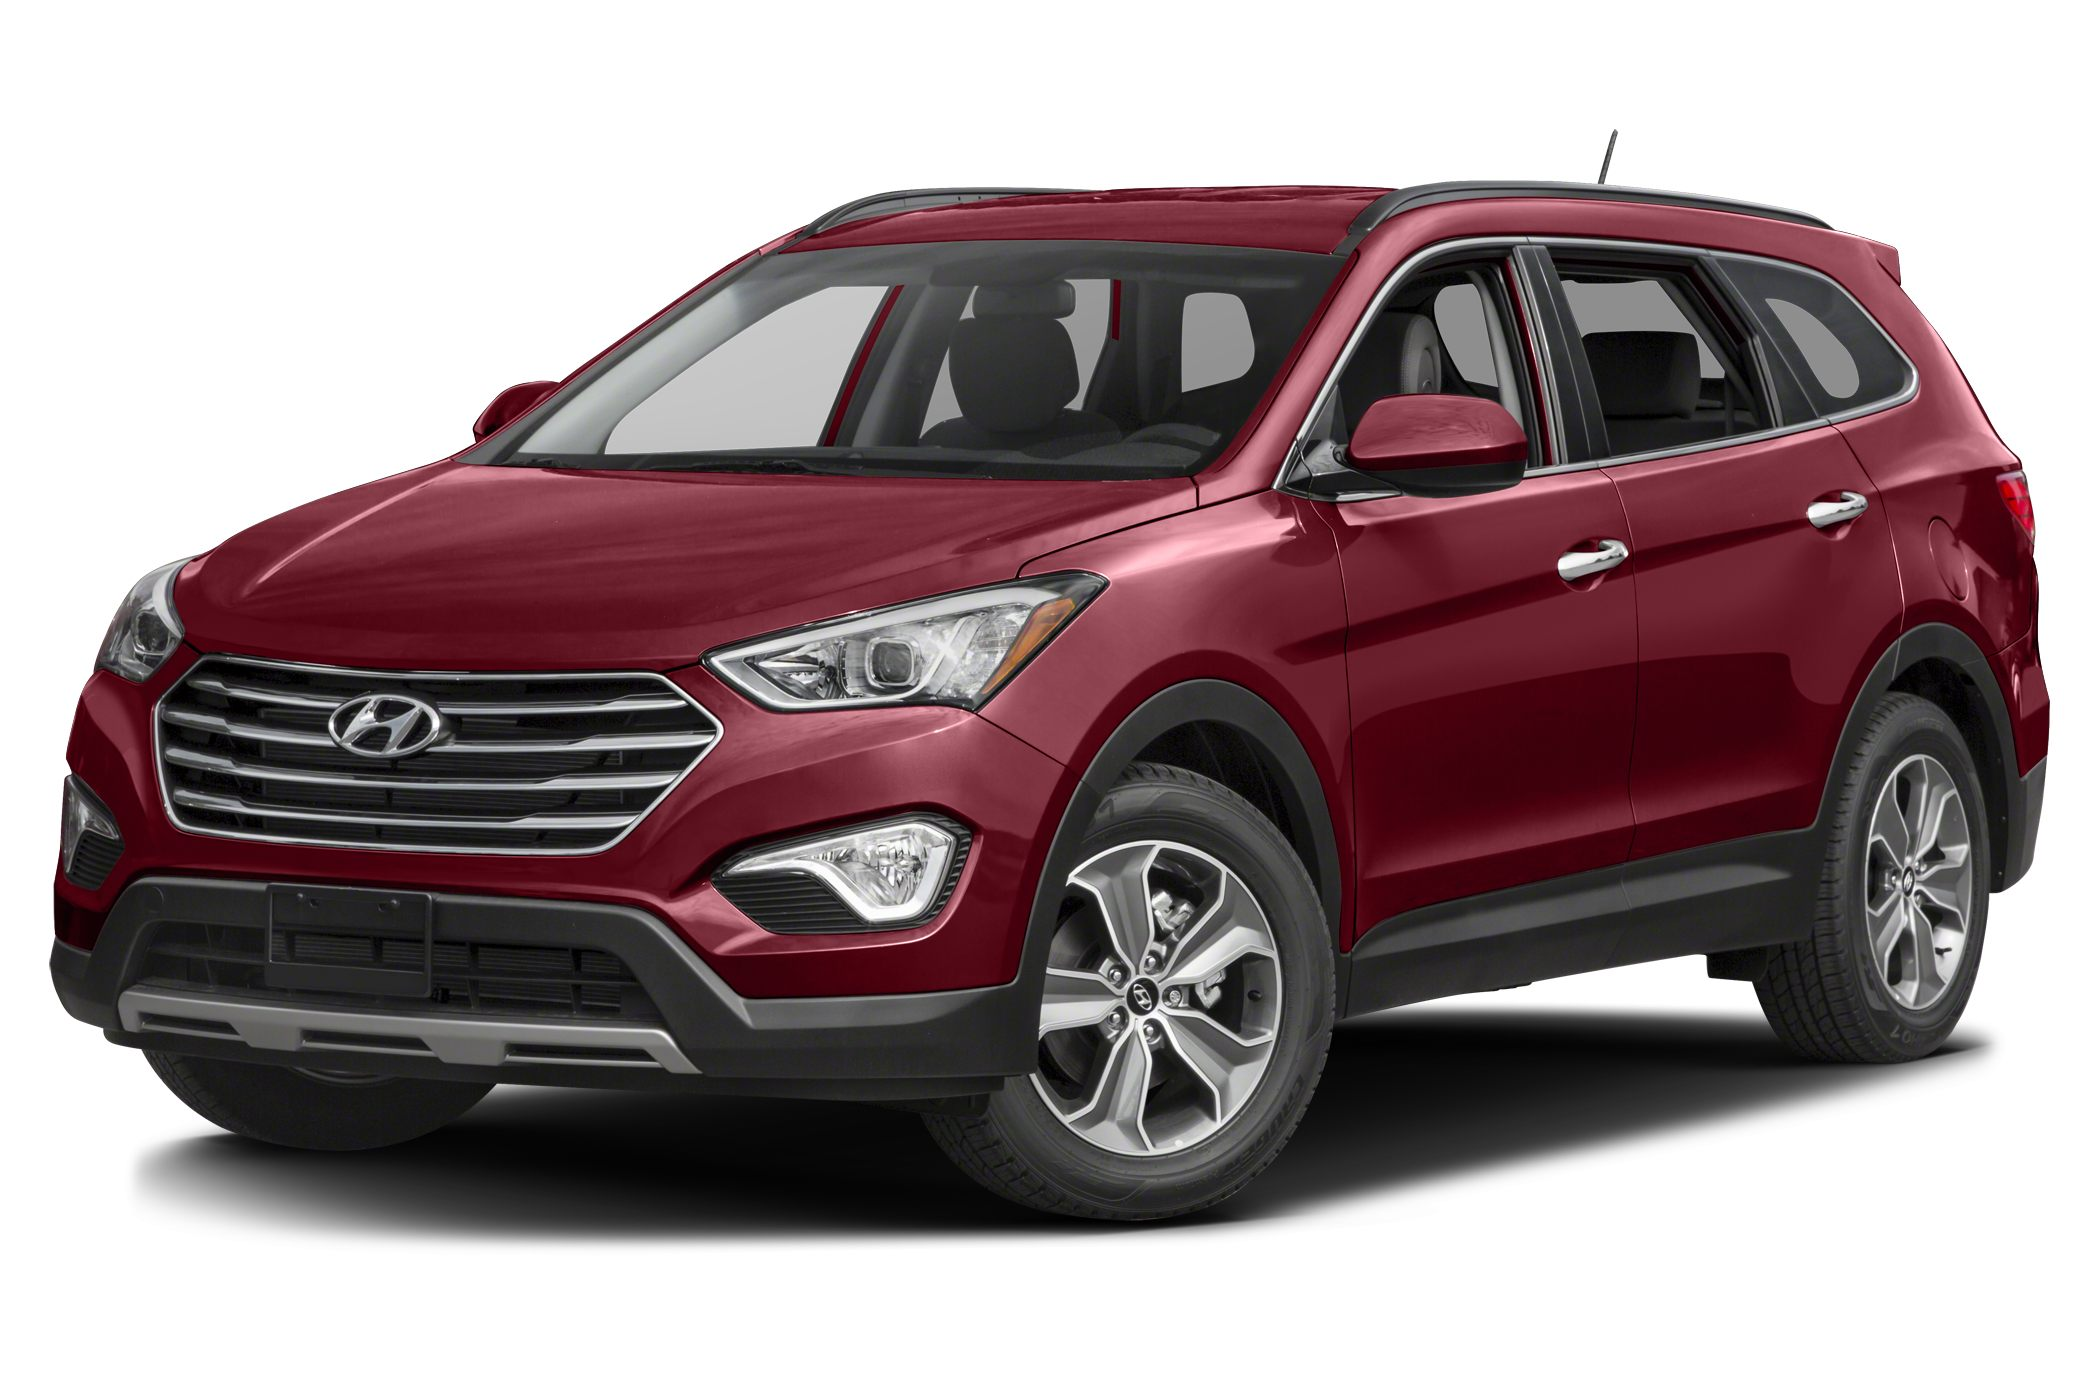 2014 hyundai santa fe specs aol autos autos weblog. Black Bedroom Furniture Sets. Home Design Ideas